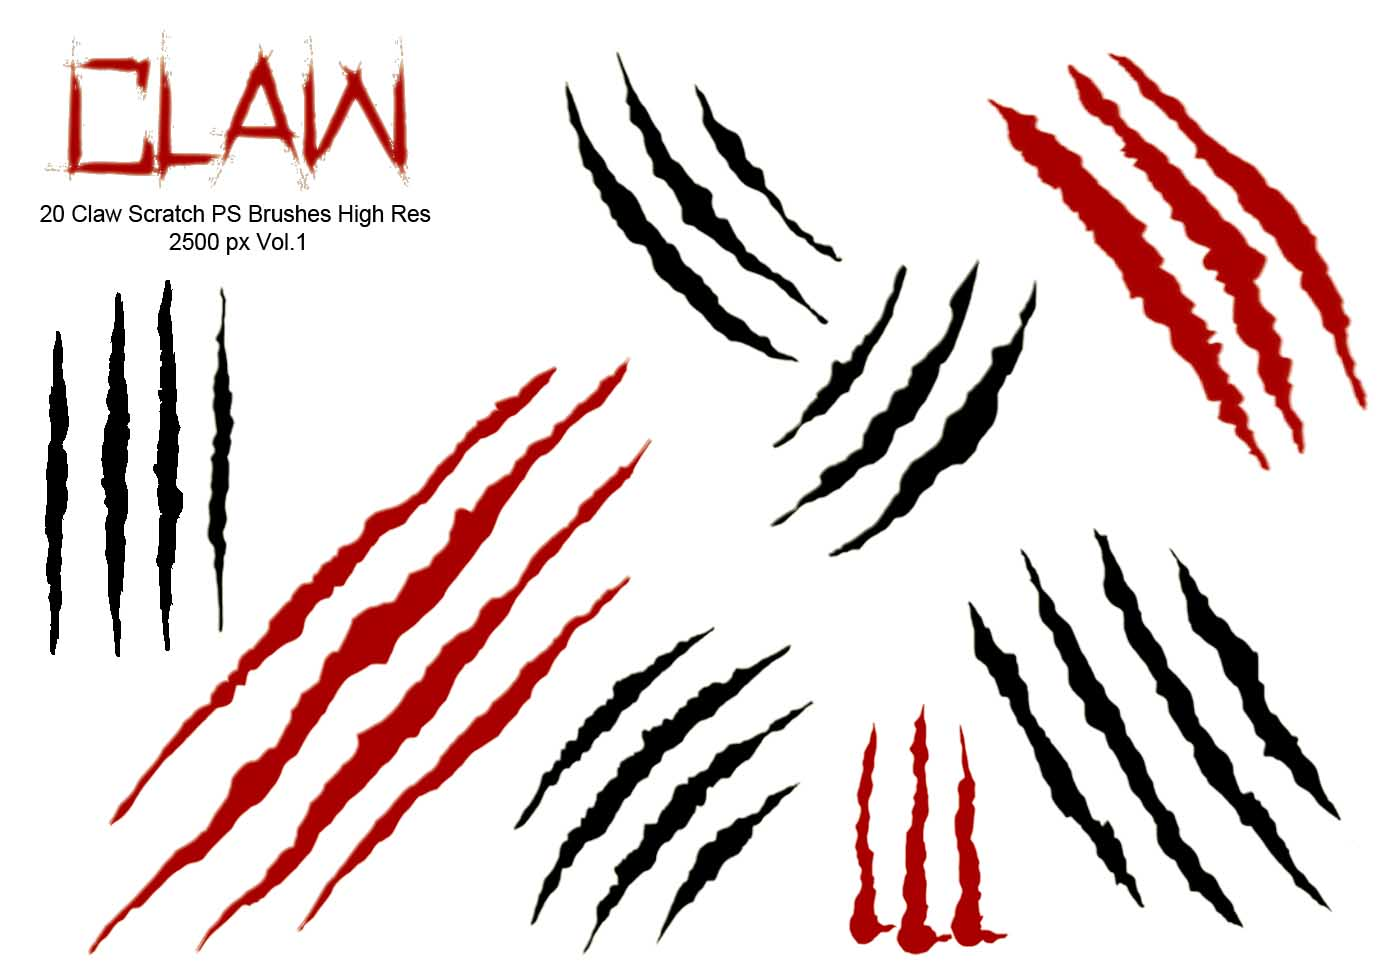 20 claw scratch ps brushes abr vol 1 free photoshop panther claw marks clipart claw marks clipart